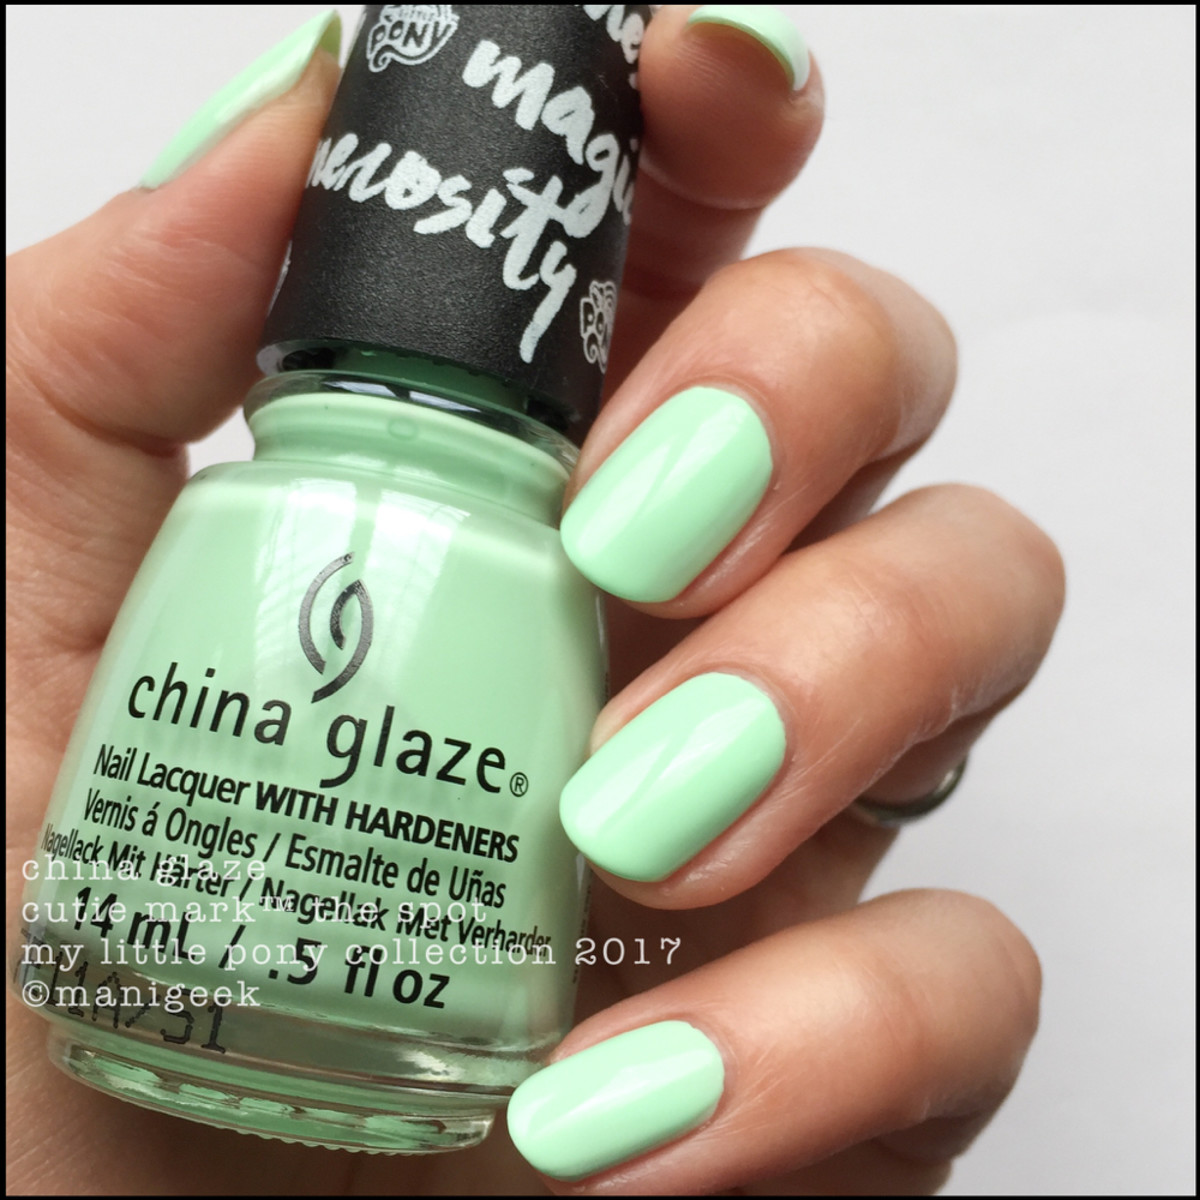 China Glaze Cutie Mark The Spot - My Little Pony Collection 2017